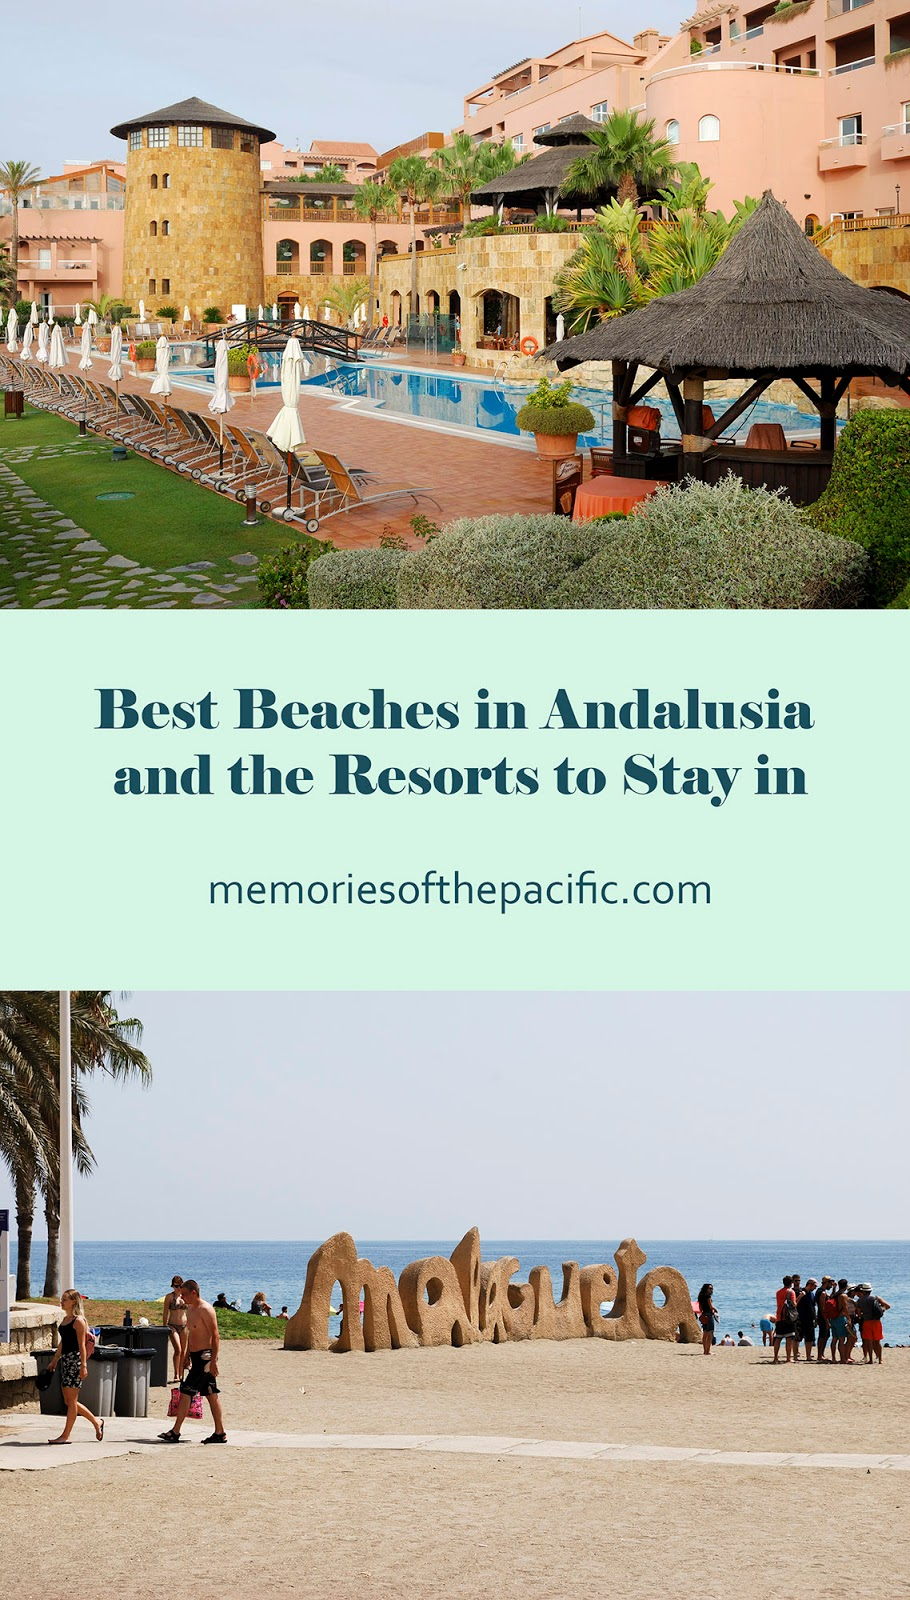 resort hotel beach spain andalusia coast southern destination